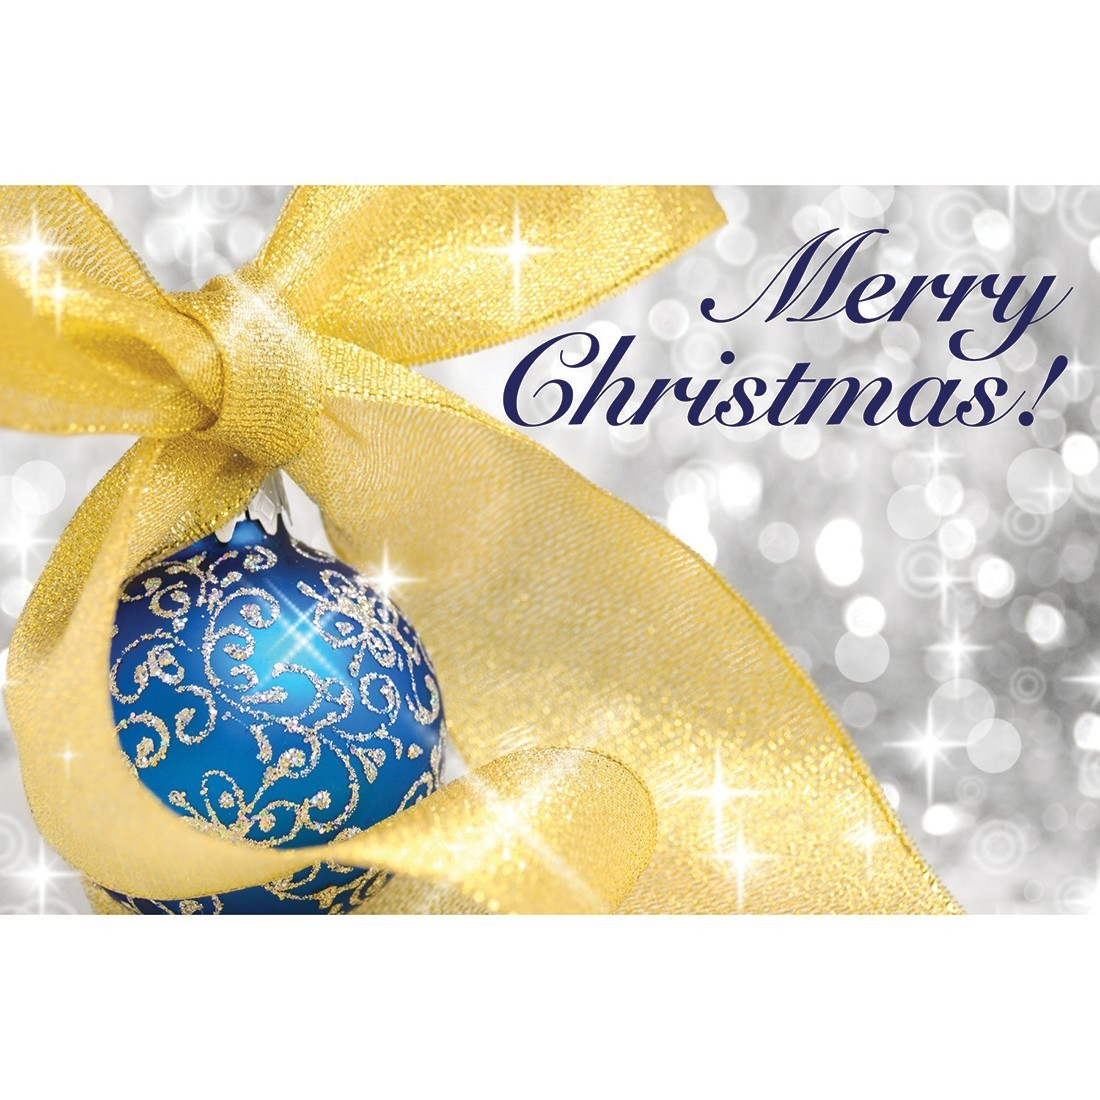 Gold Ribbon Merry Christmas Greeting Cards [image]